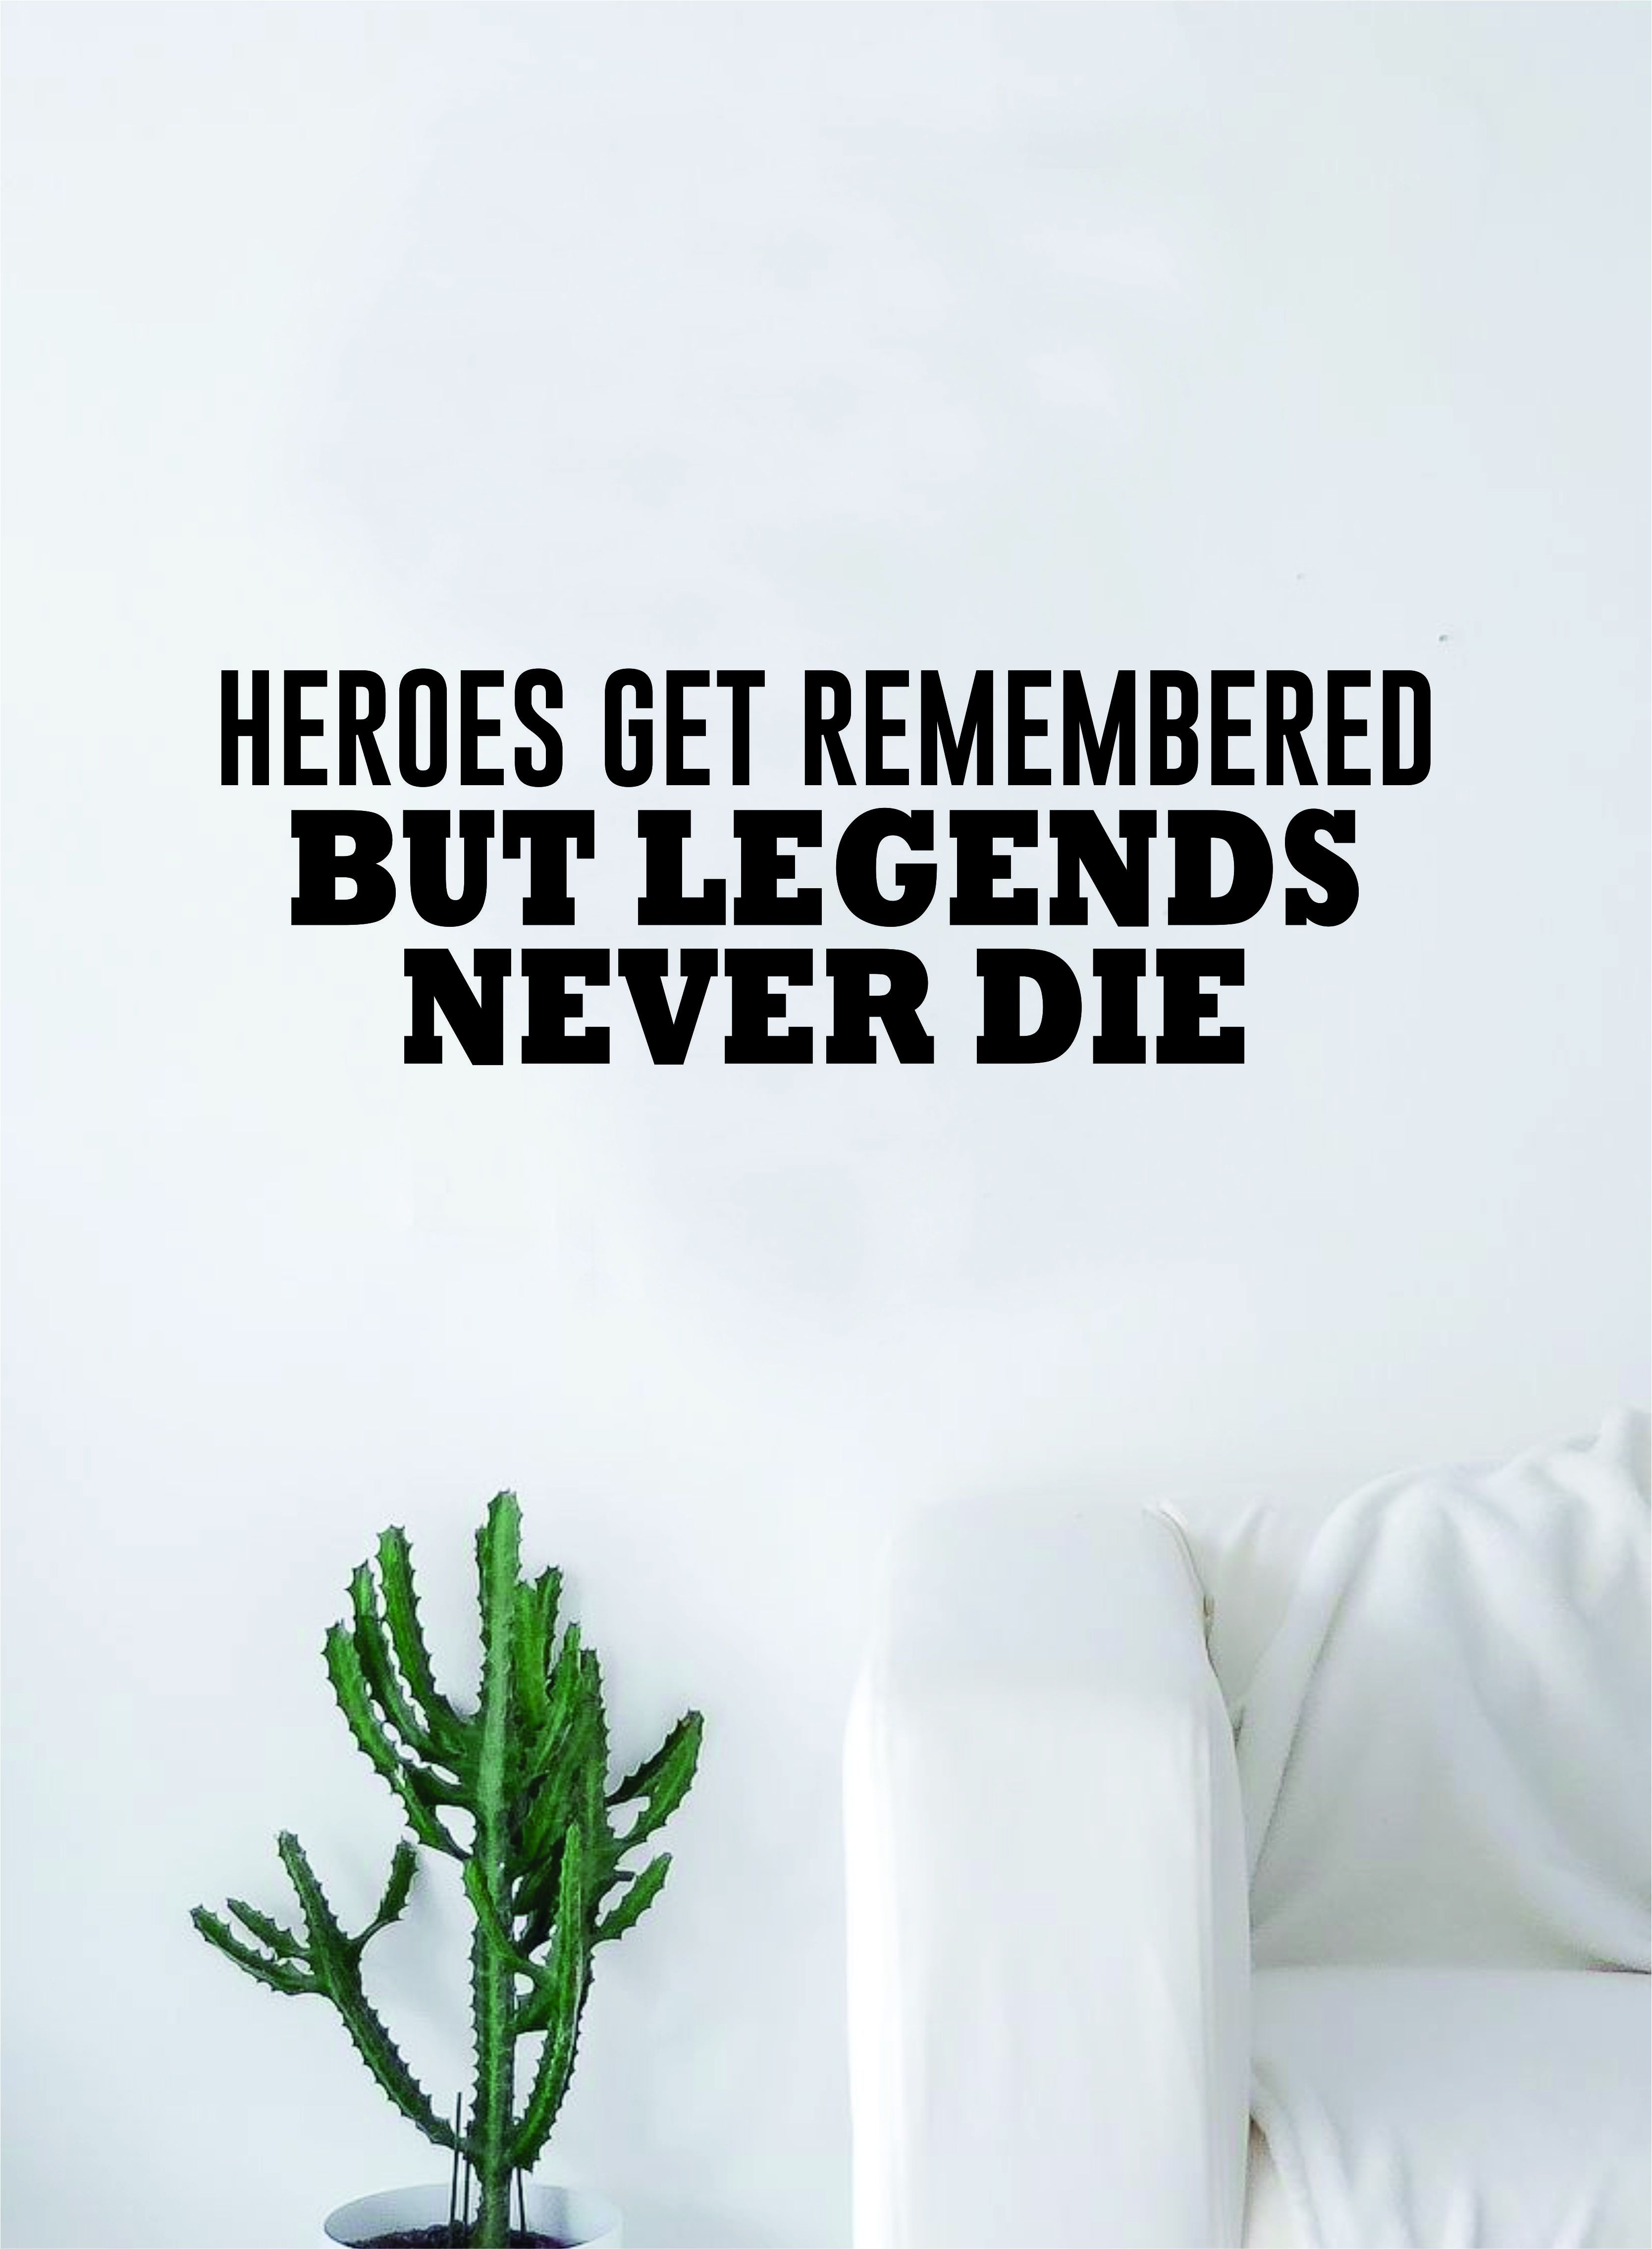 Hereos Get Remembered But Legends Never Die Quote Decal Sticker Wall Vinyl Art Wall Room Decor Inspirational Motivational Sports Quote Decals Vinyl Wall Art Vinyl Wall